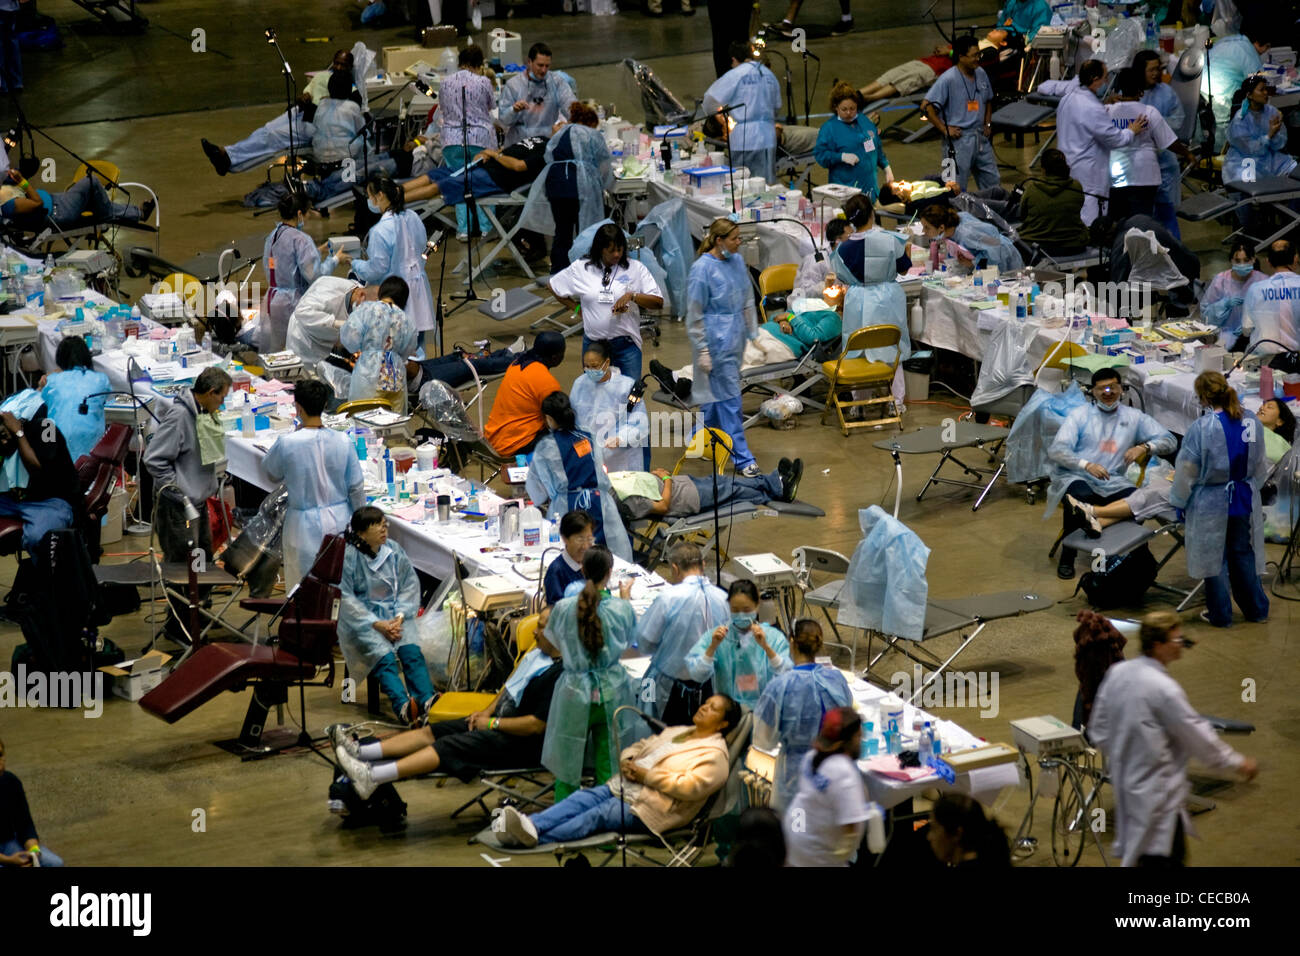 Hundreds of indigent people receive free dental care in Inglewood, CA. Organized by the Remote Area Medical organization - Stock Image